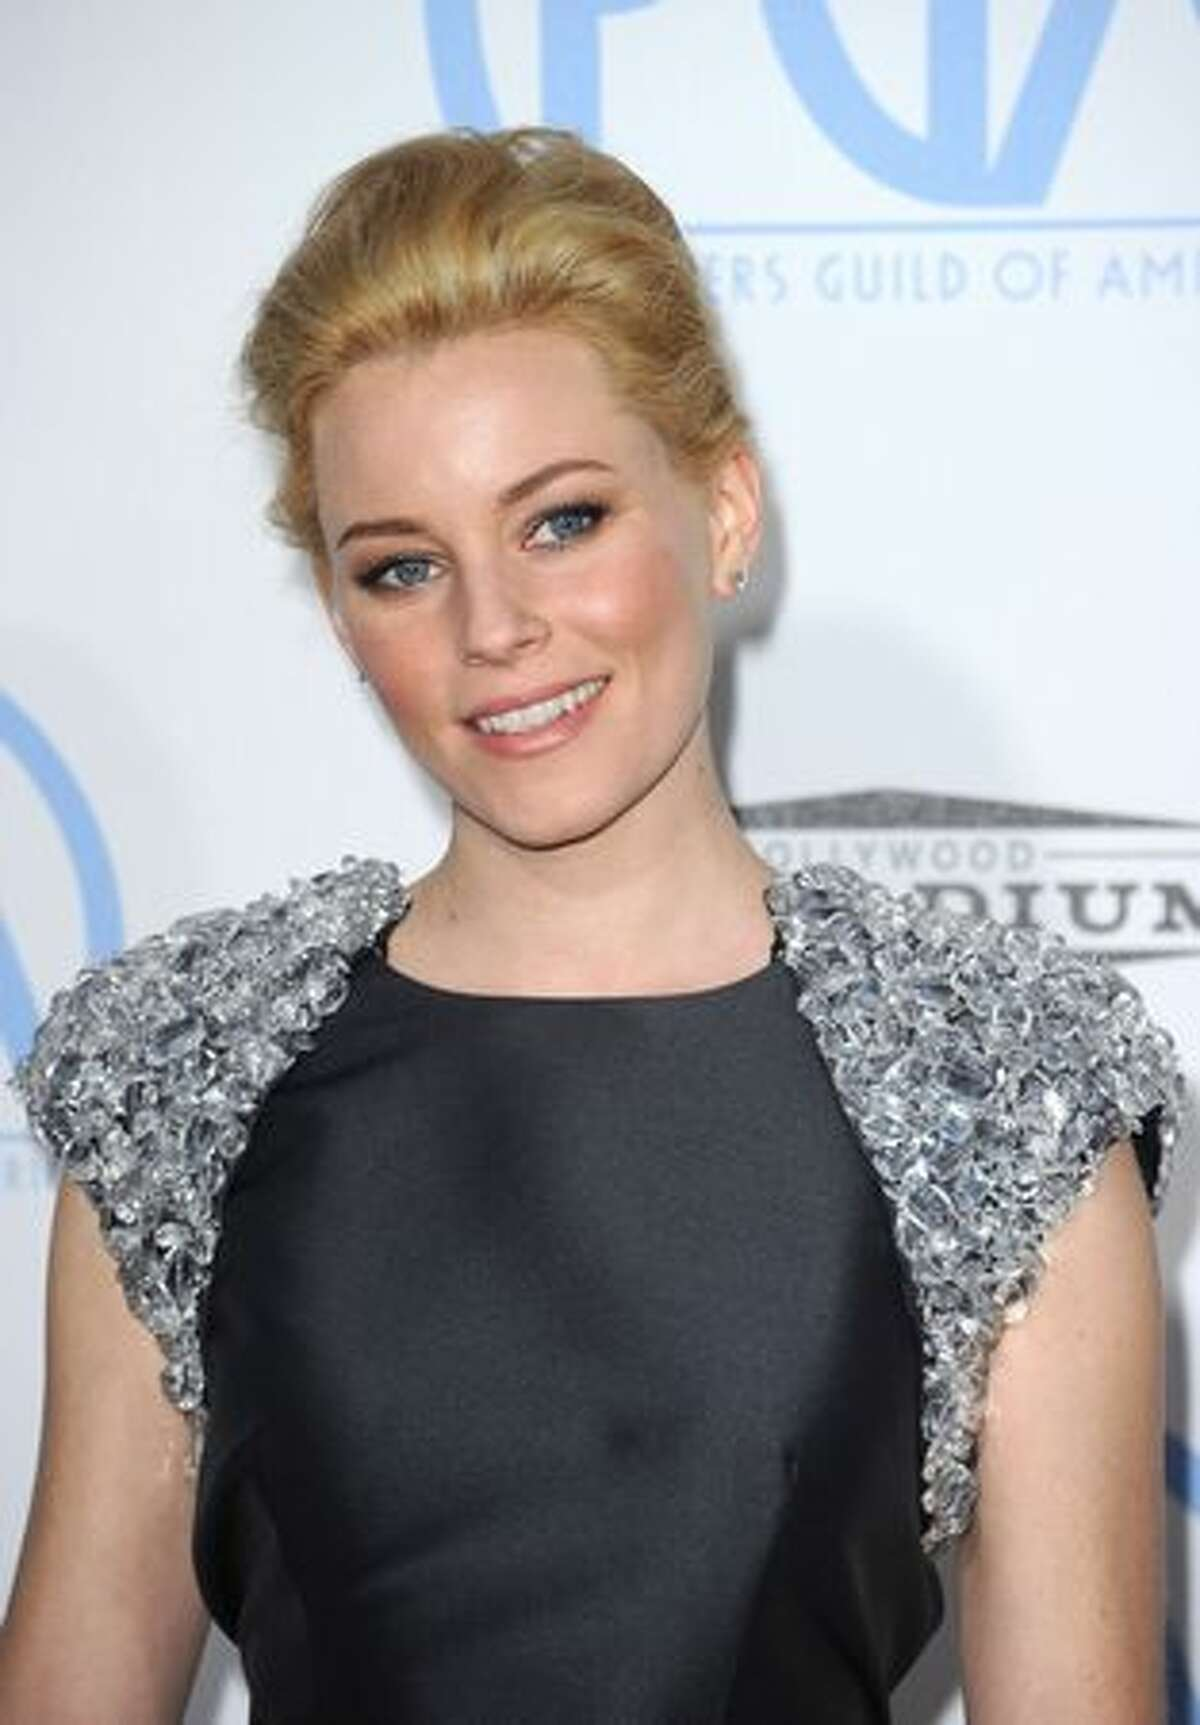 Actress Elizabeth Banks arrives at the 21st annual Producers Guild of America Awards at the Hollywood Palladium in Los Angeles on Sunday, Jan. 24, 2010.